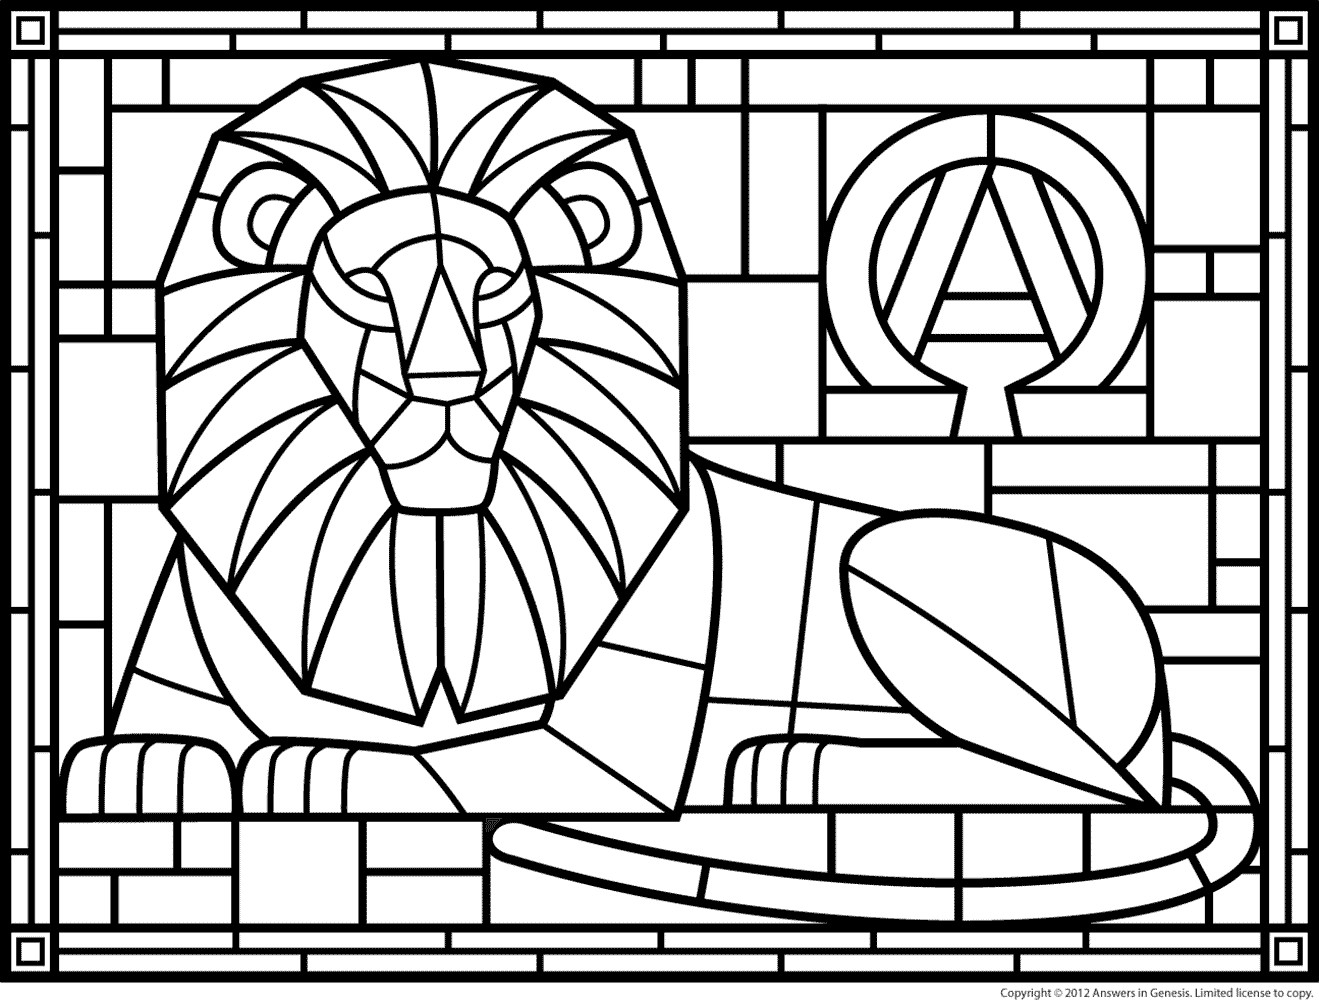 Best ideas about Stained Glass Free Coloring Pages . Save or Pin Stained Glass Coloring Pages Bestofcoloring Now.